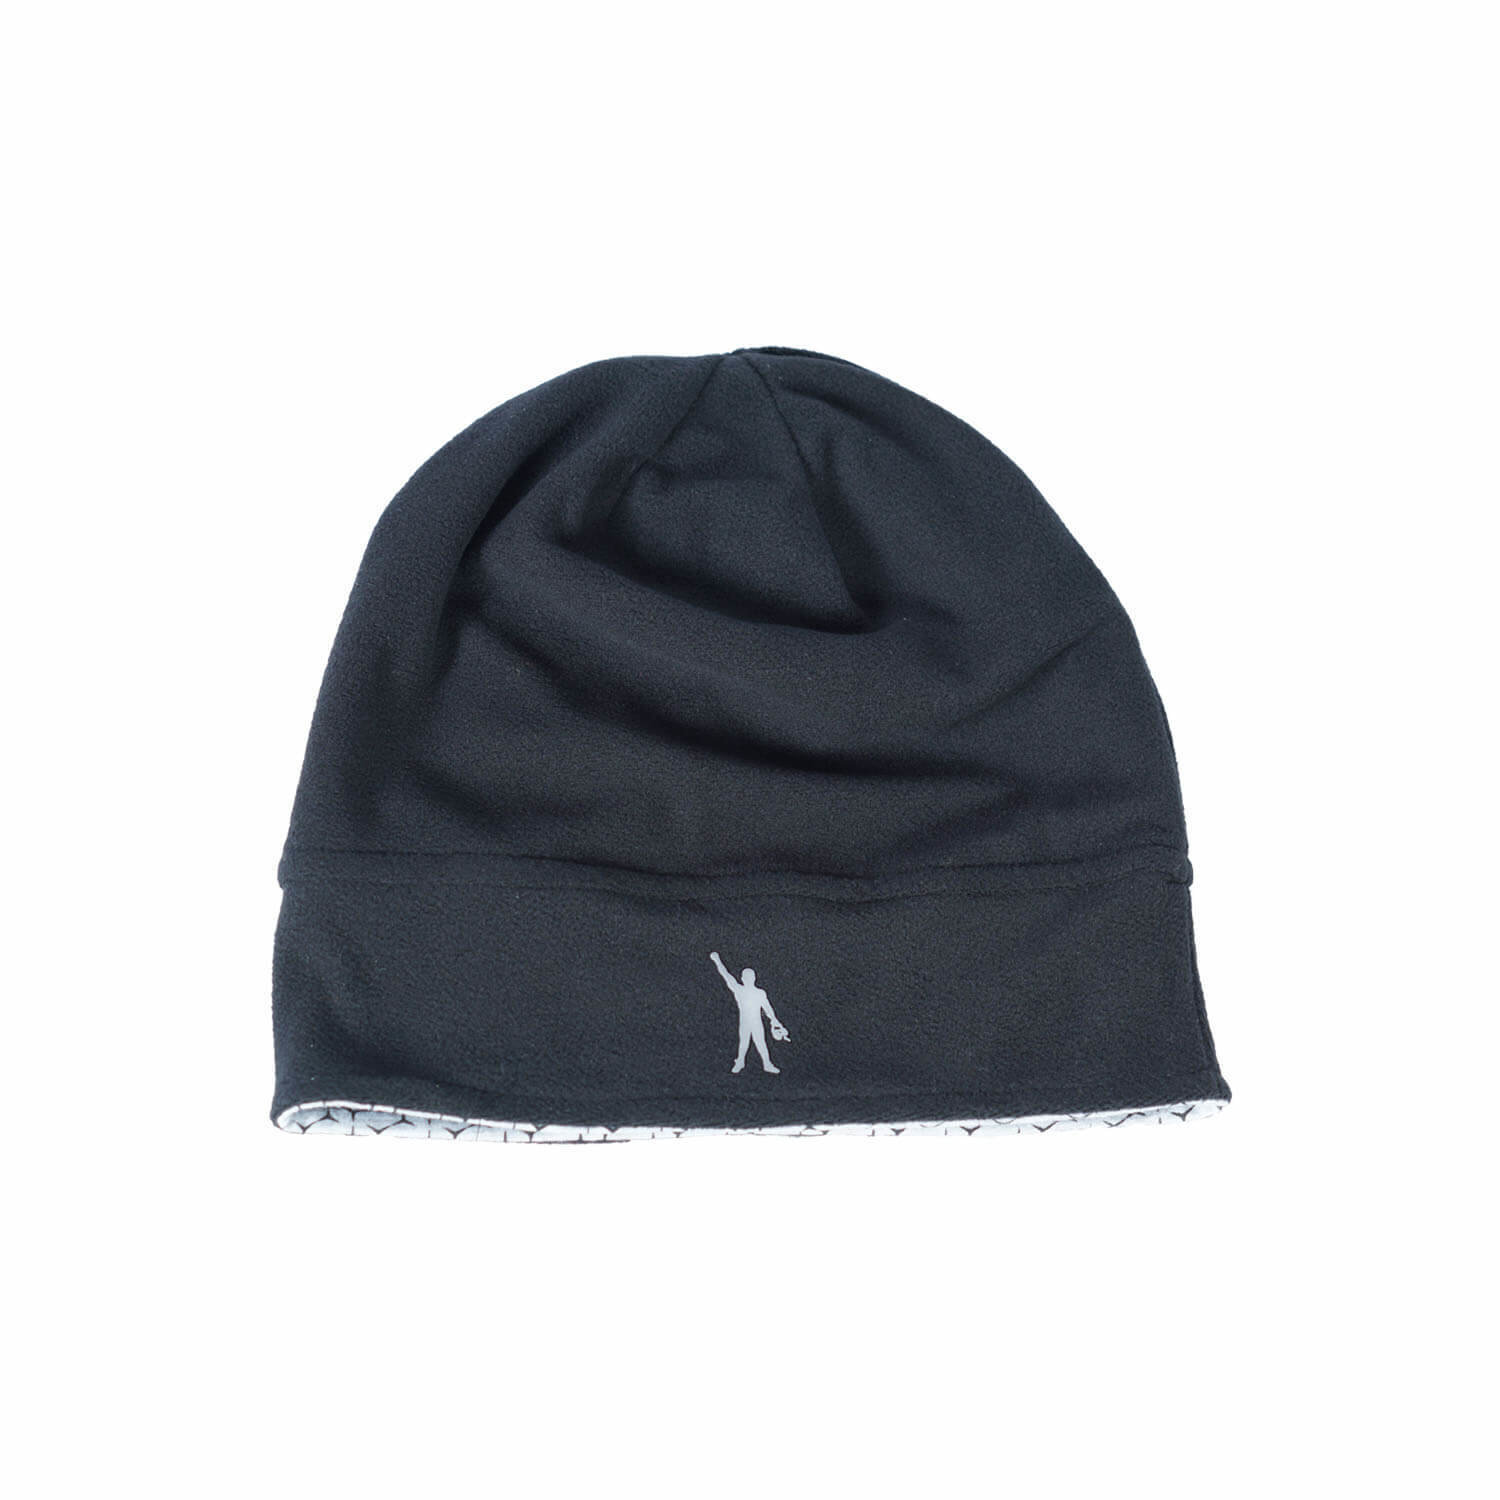 TG Pin Cancer Reversible Beanie 503